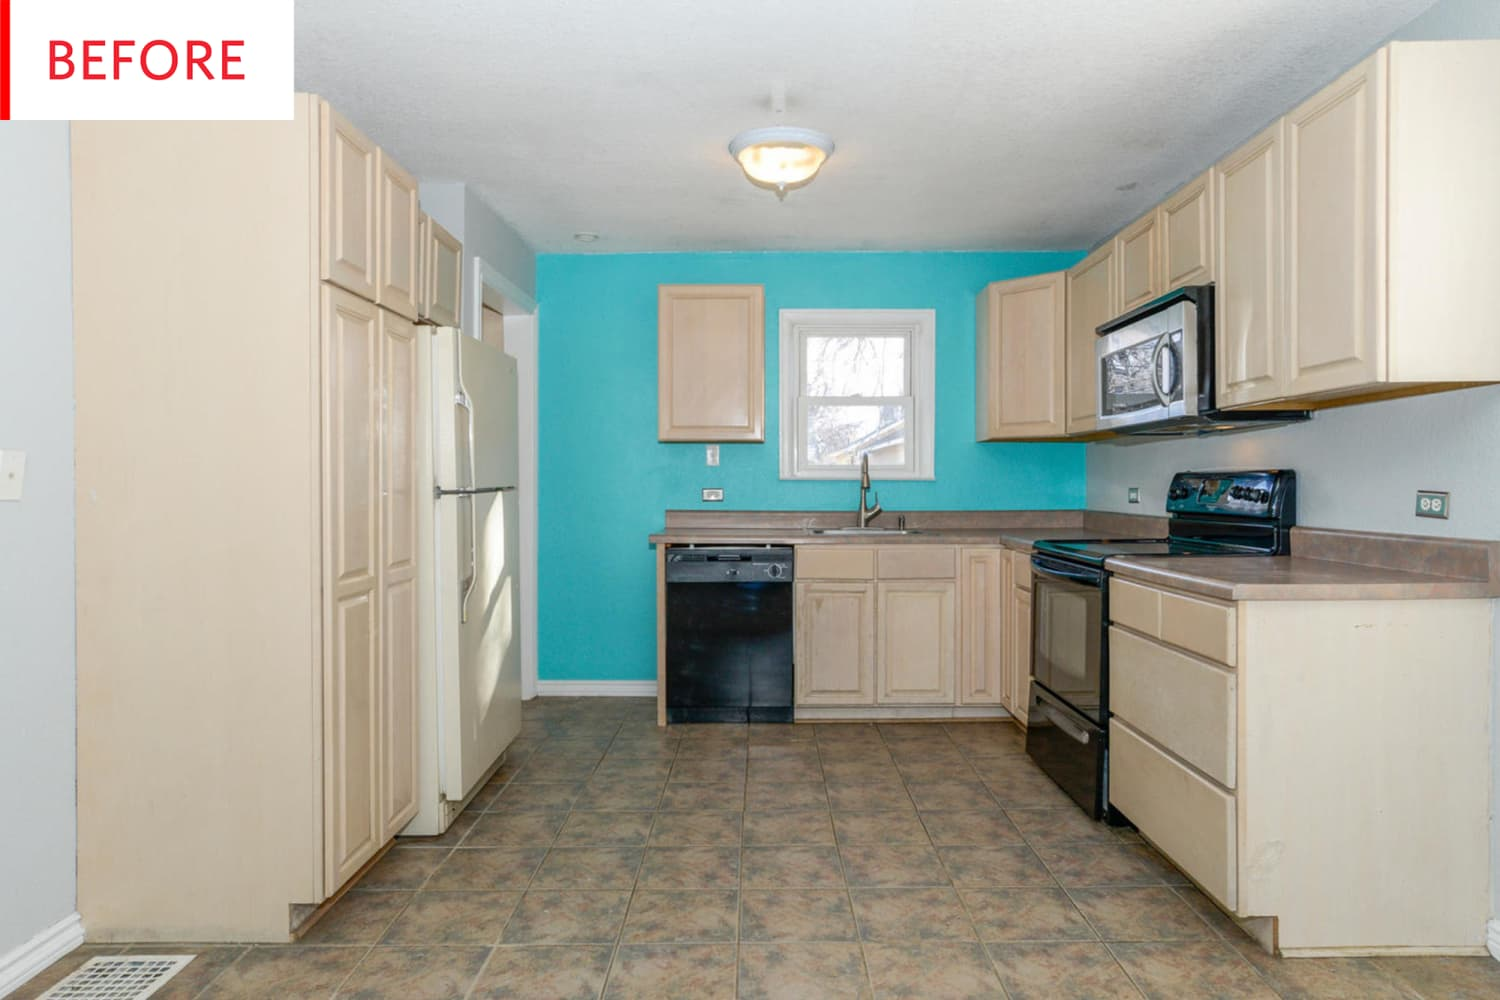 Before and After: This Now-Stunning IKEA Kitchen Cost $7,000